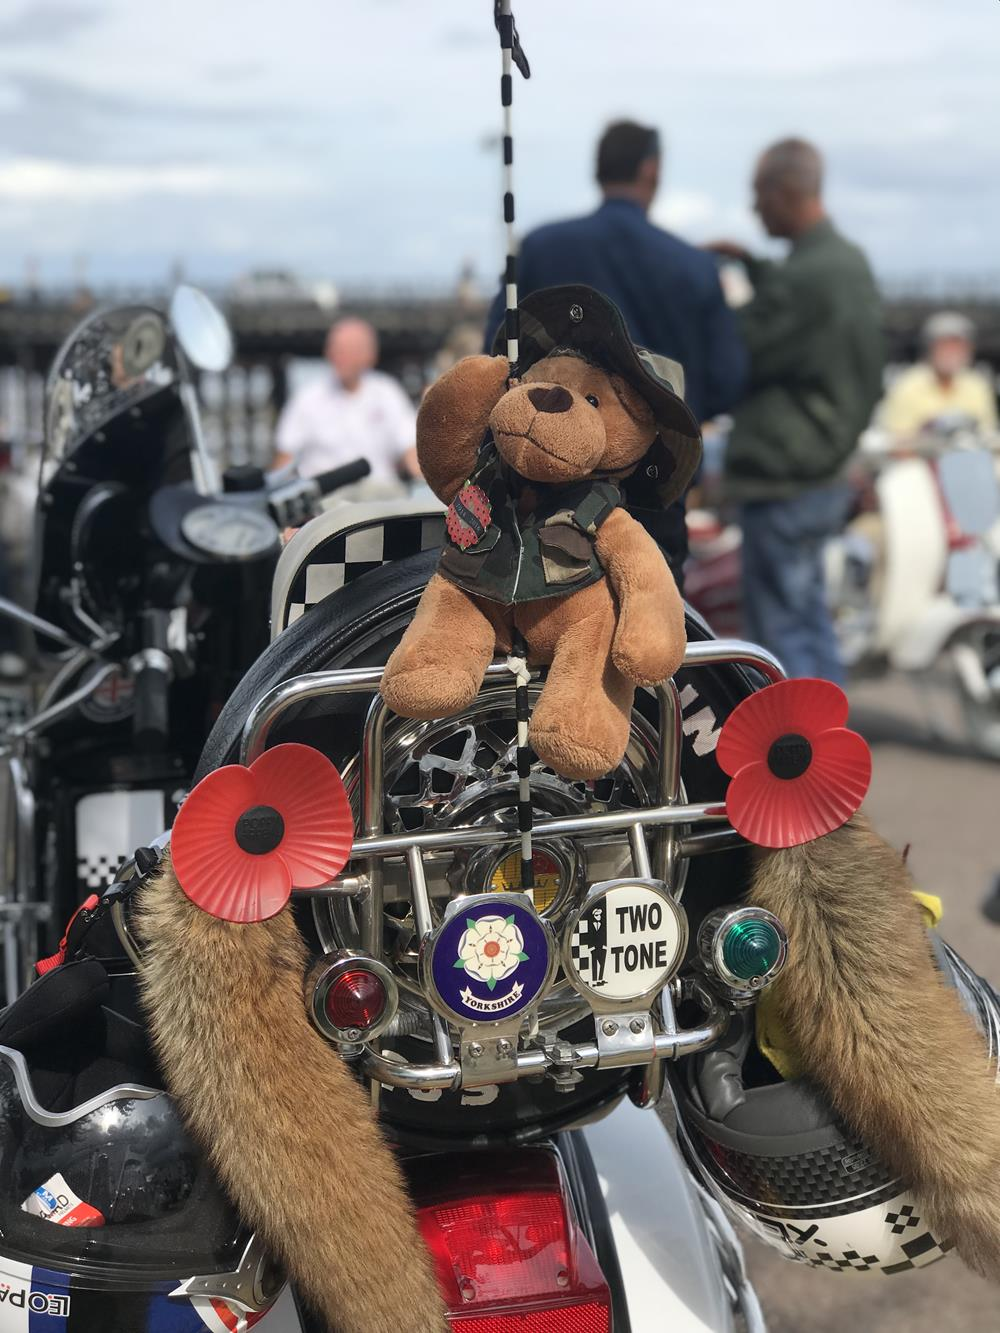 Rear scooter rack with Teddy and poppies fixed to it